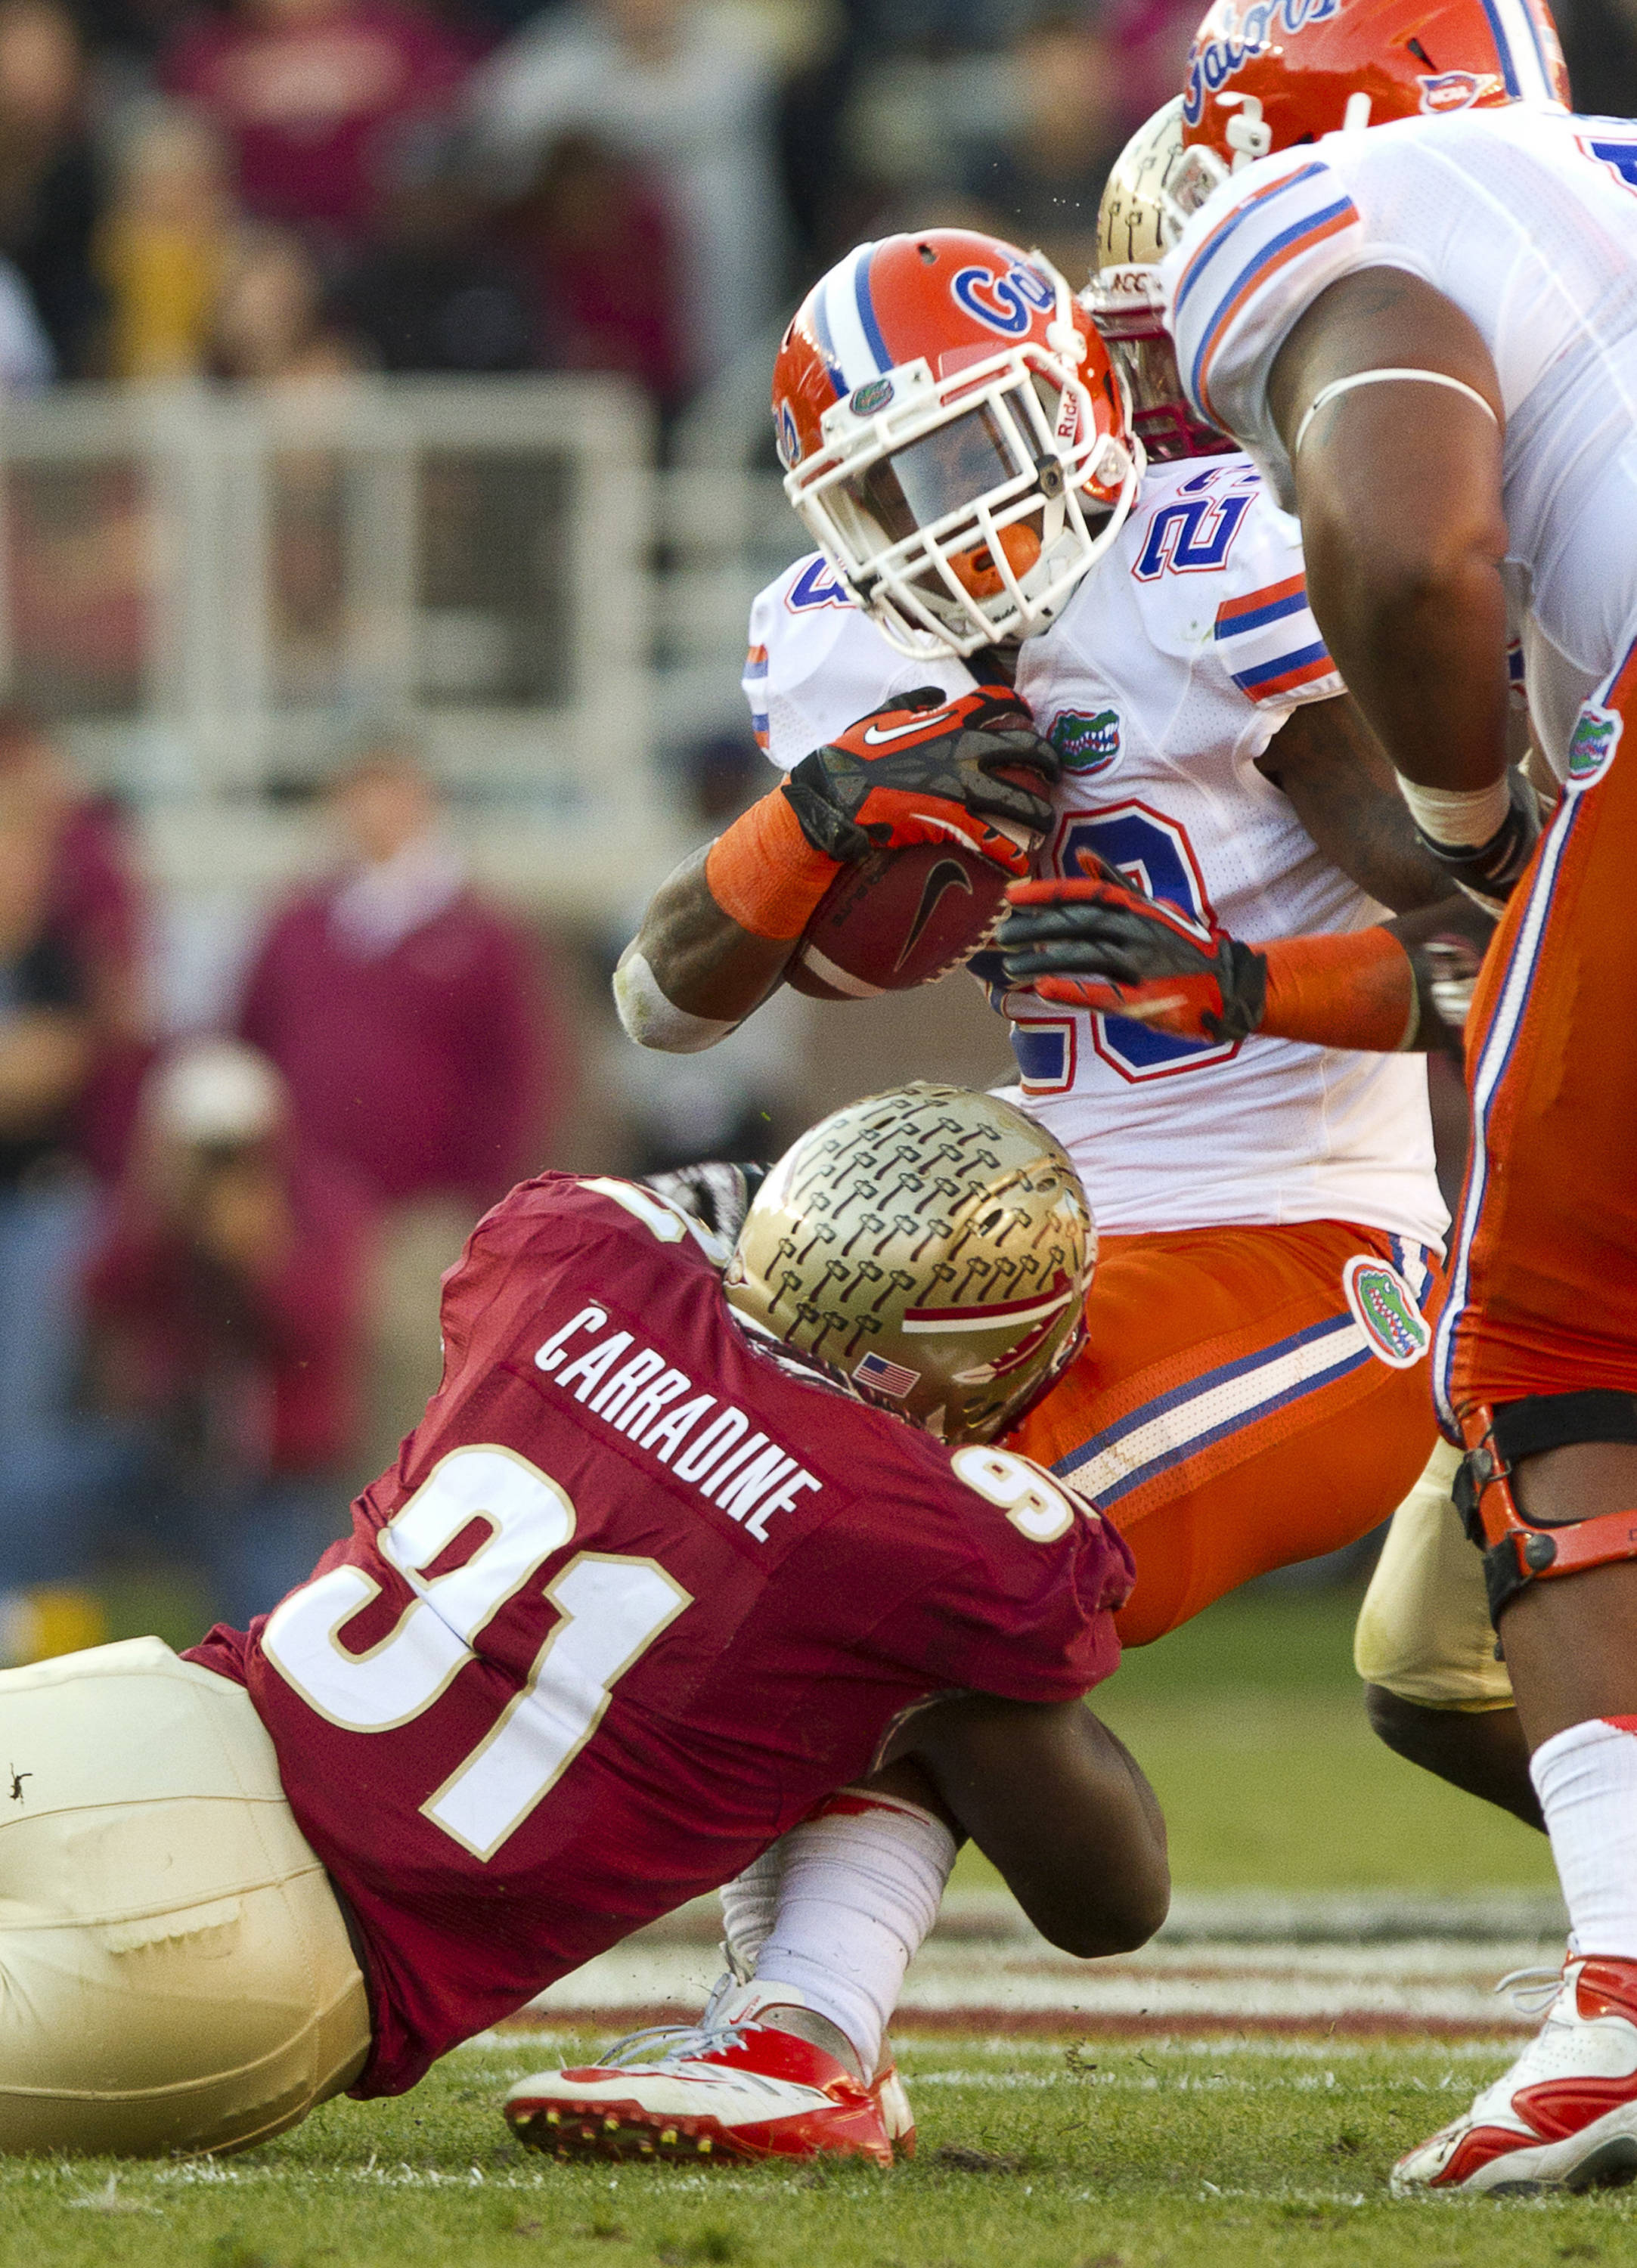 Cornellius Carradine (91) makes a tackle during FSU Football's game against UF on Saturday, November 24, 2012 in Tallahassee, Fla.